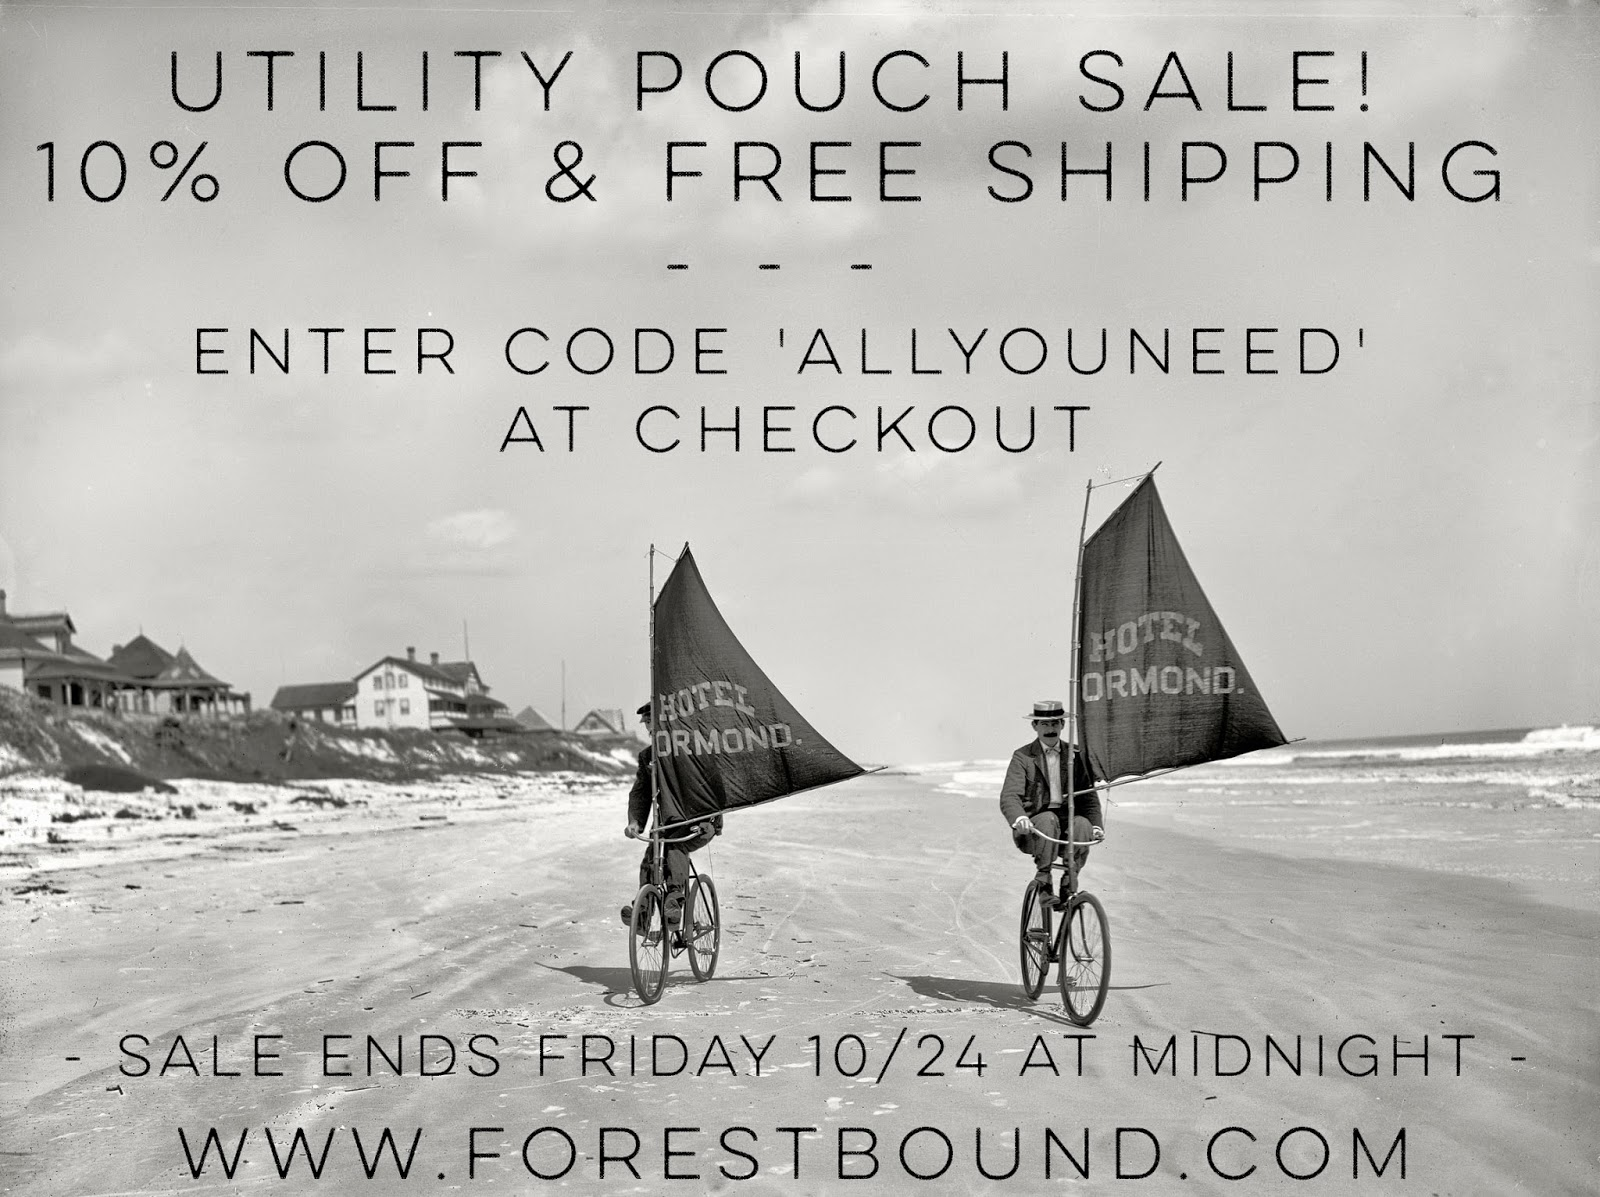 http://www.forestbound.com/collections/forestbound-originals-pouches